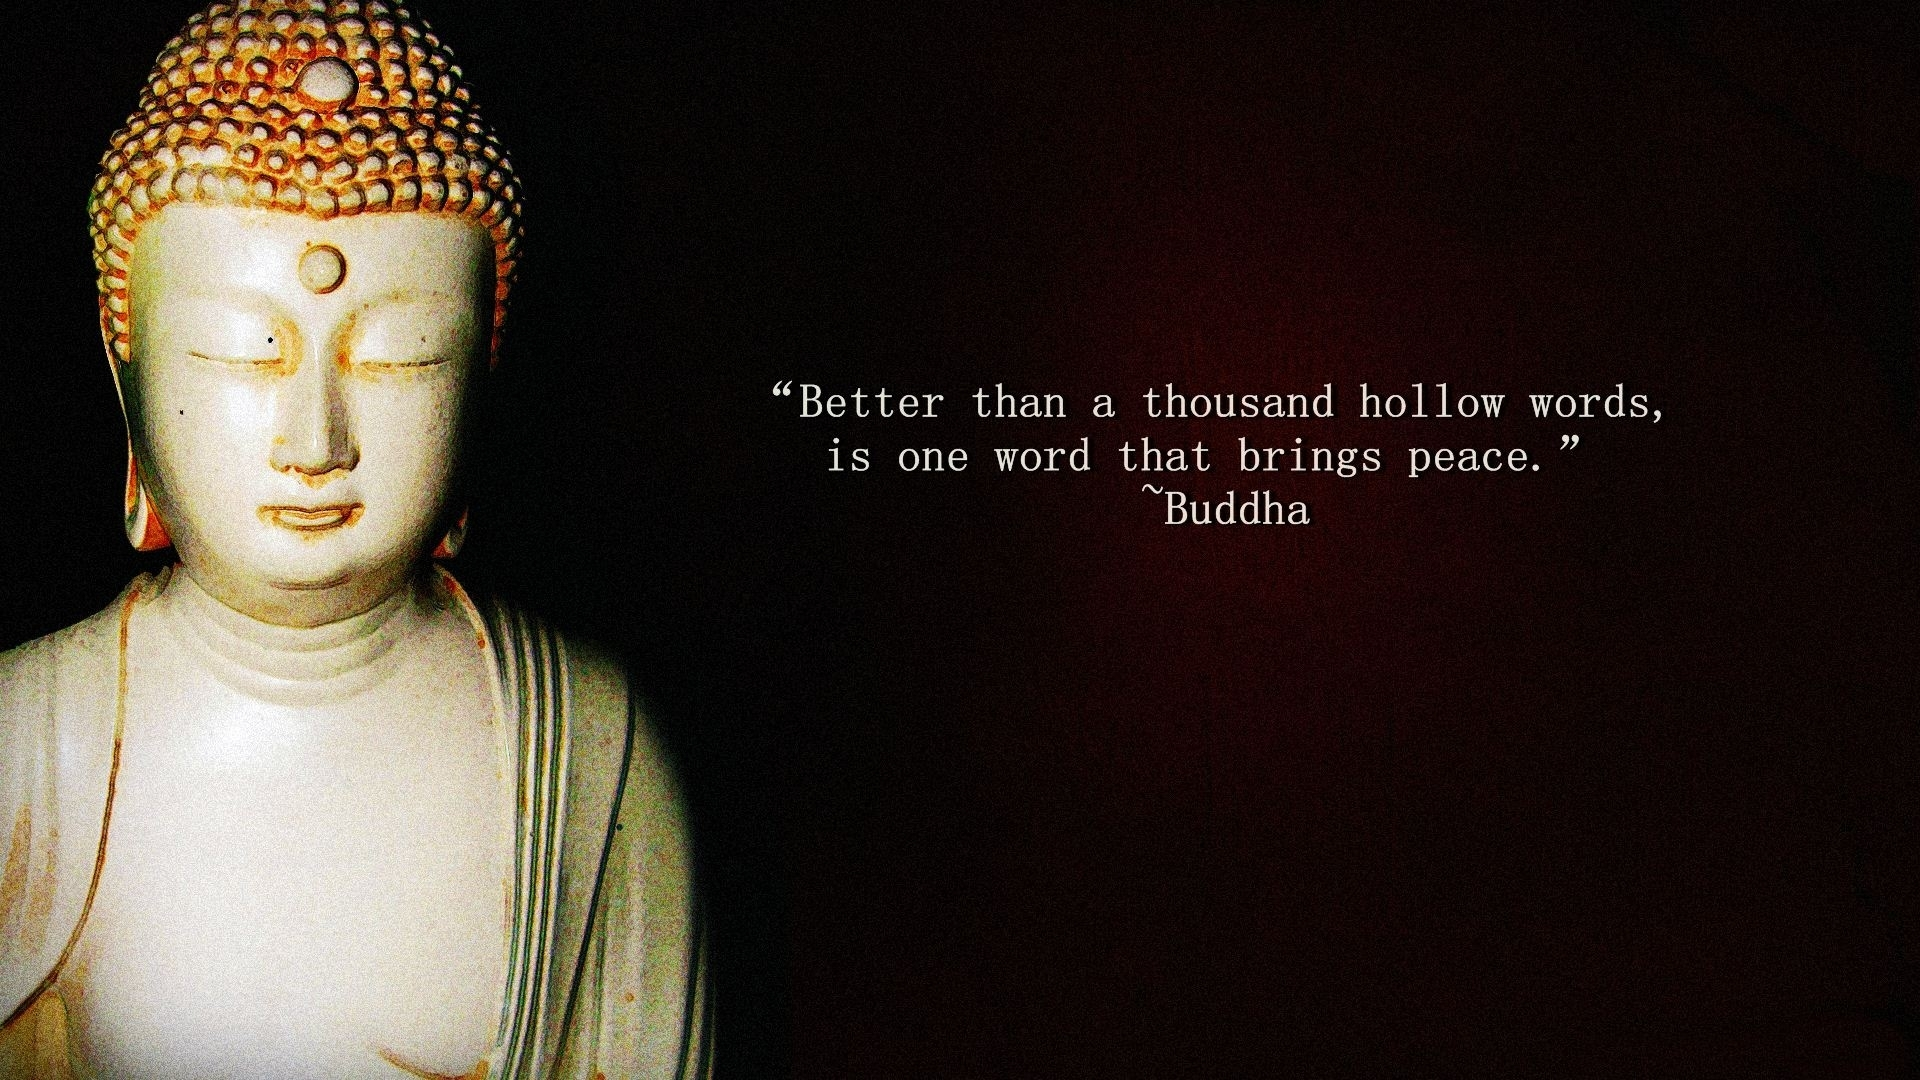 buddha quotes pc wallpaper 05663 - baltana